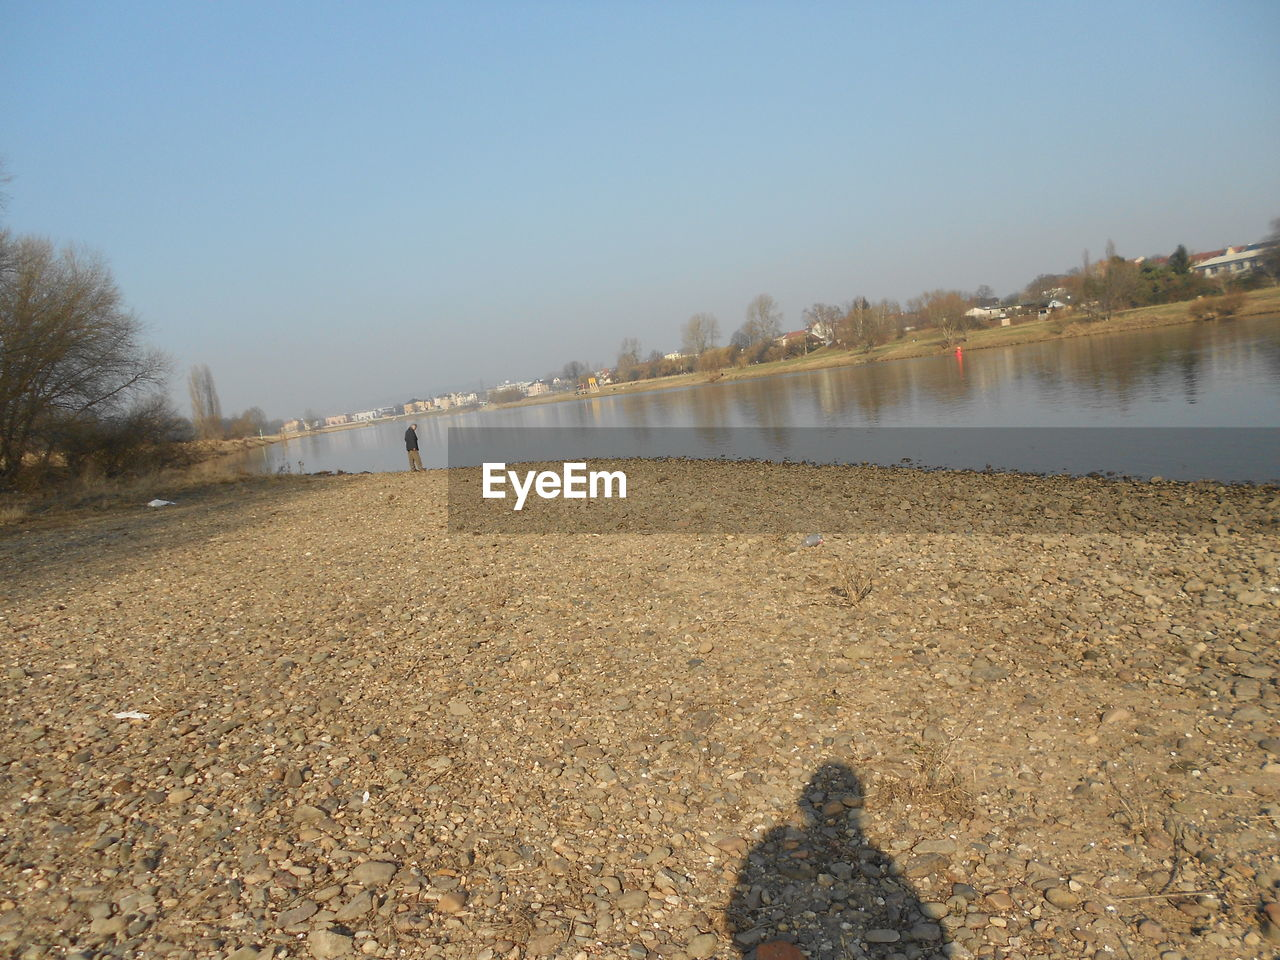 water, nature, outdoors, clear sky, tranquil scene, day, tranquility, beauty in nature, scenics, river, sky, no people